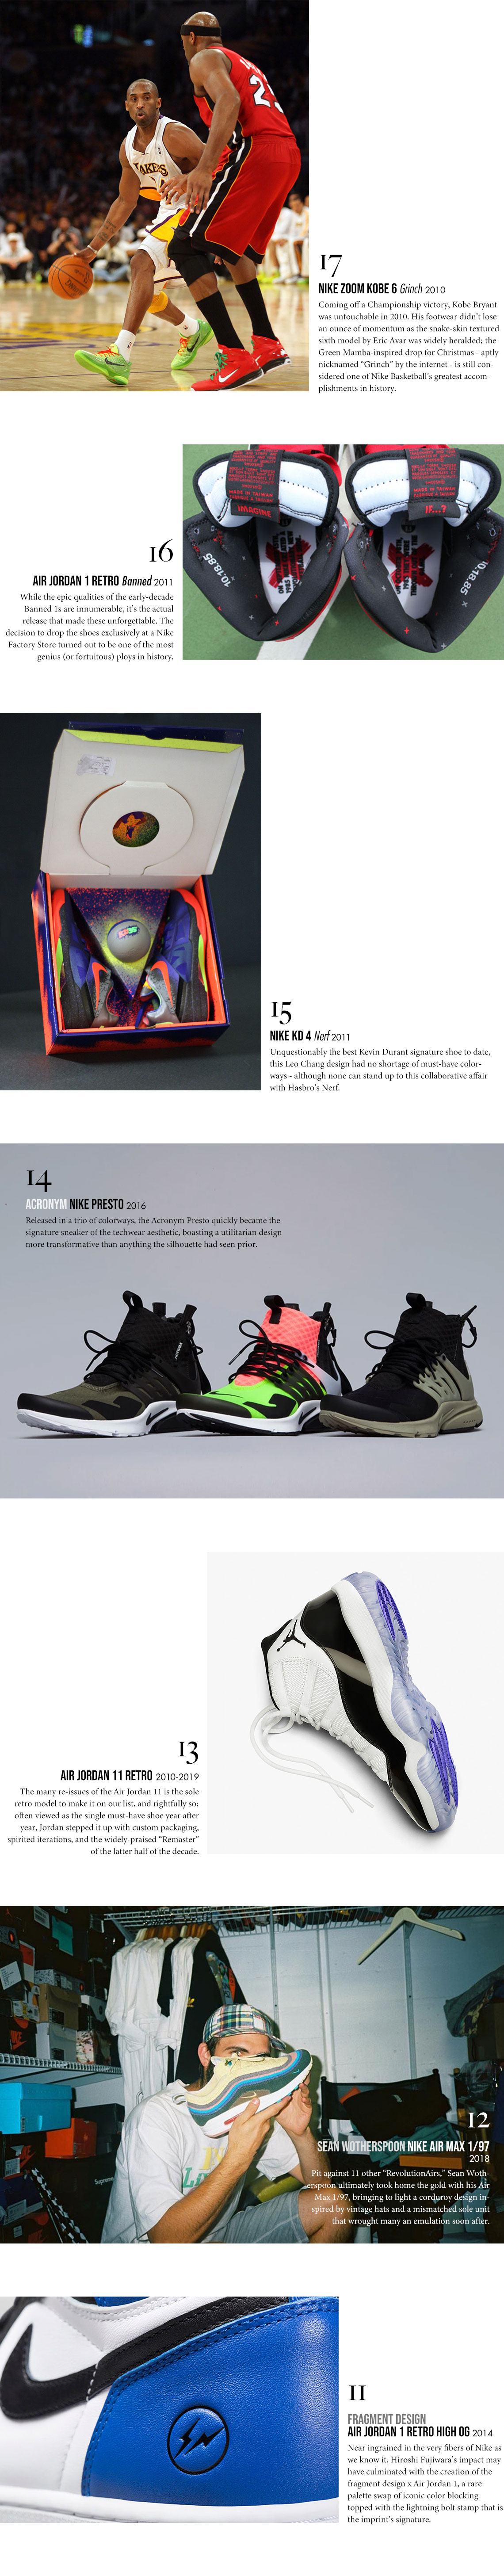 16 Best Shoe Shots images in 2020 | Shoes, Sneakers, Best